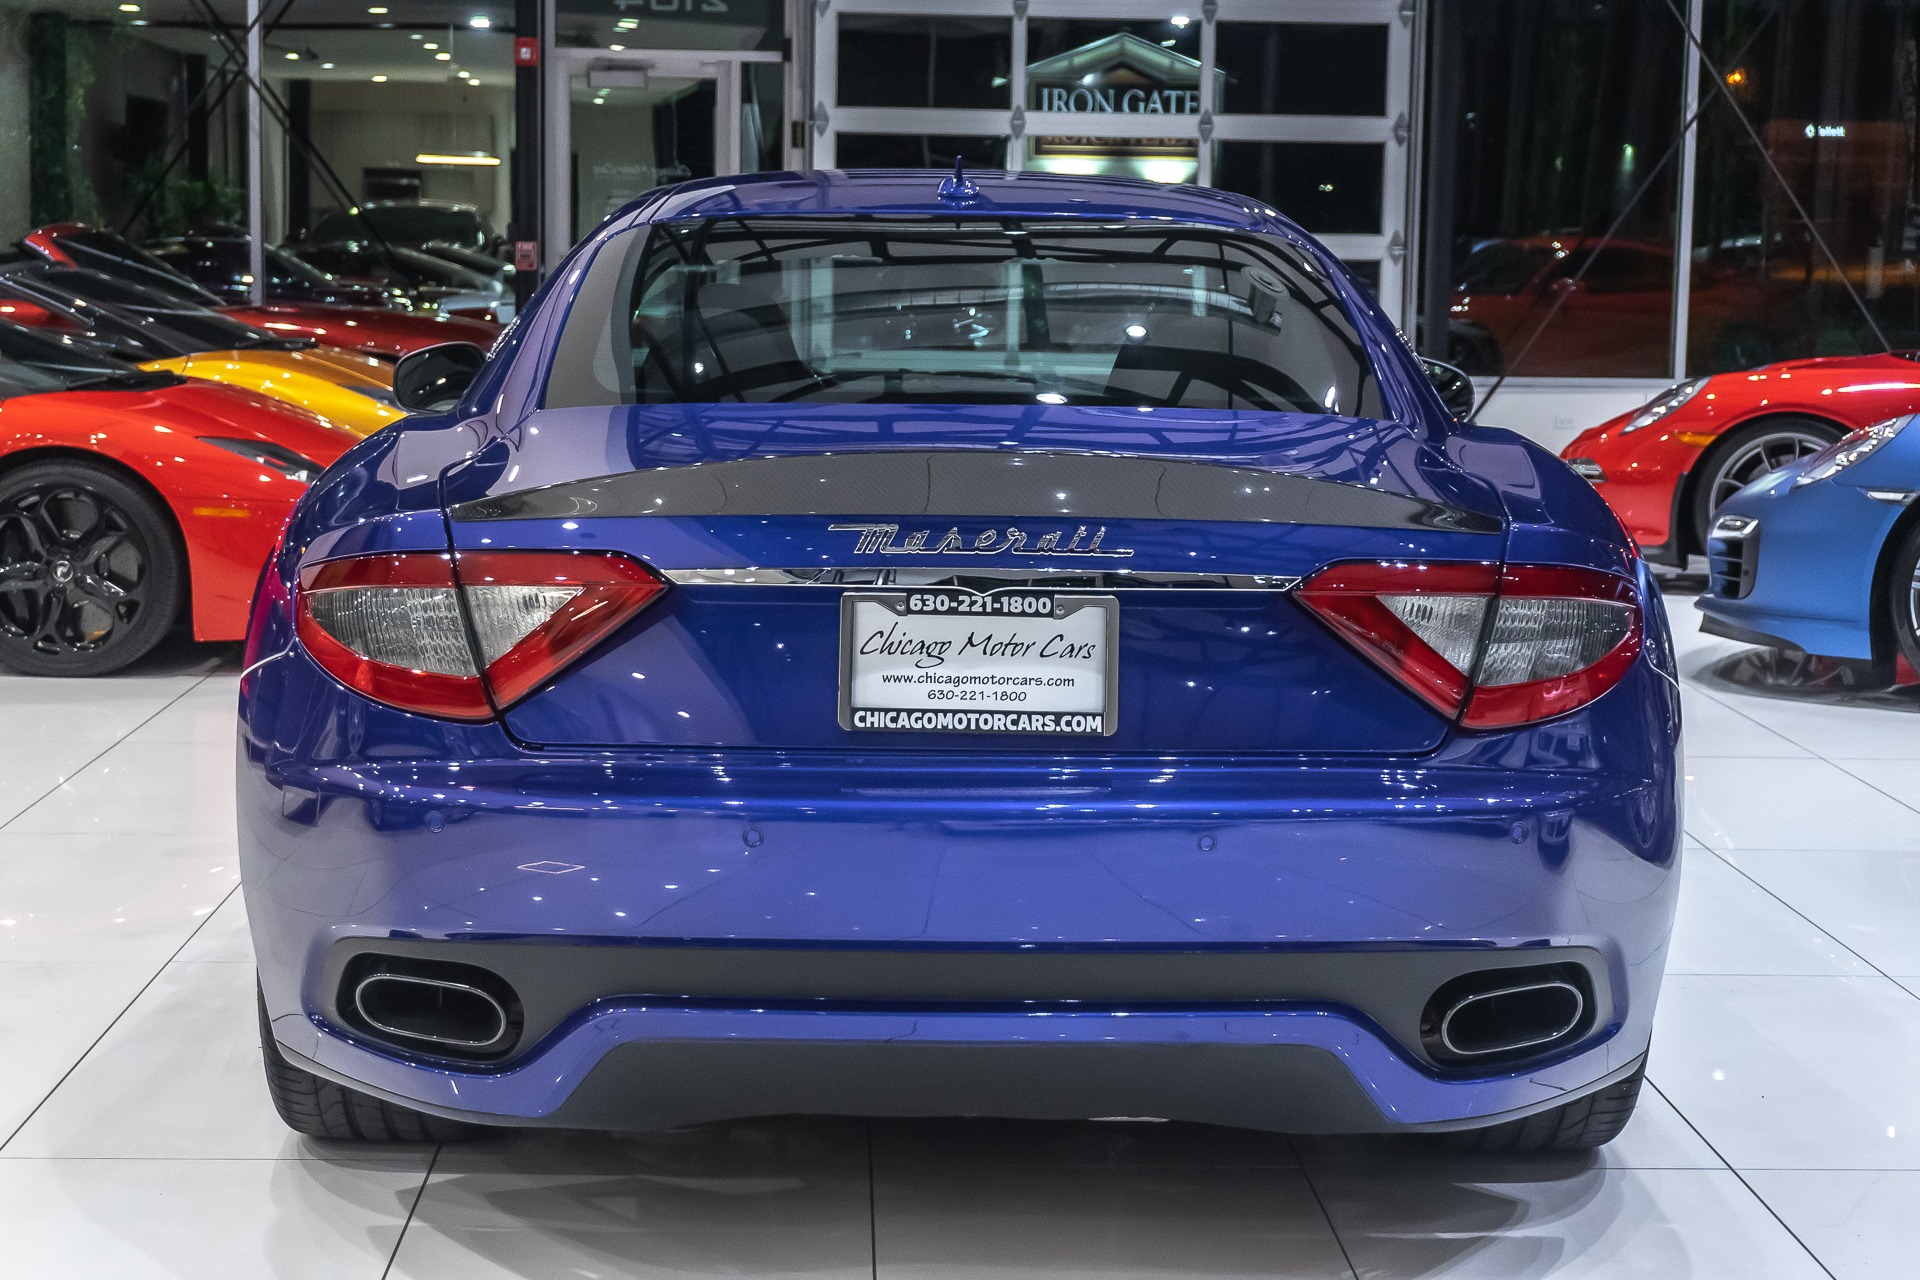 Used 2017 Maserati GranTurismo Sport Coupe MSRP $149K+ For Sale (Special Pricing)   Chicago ...